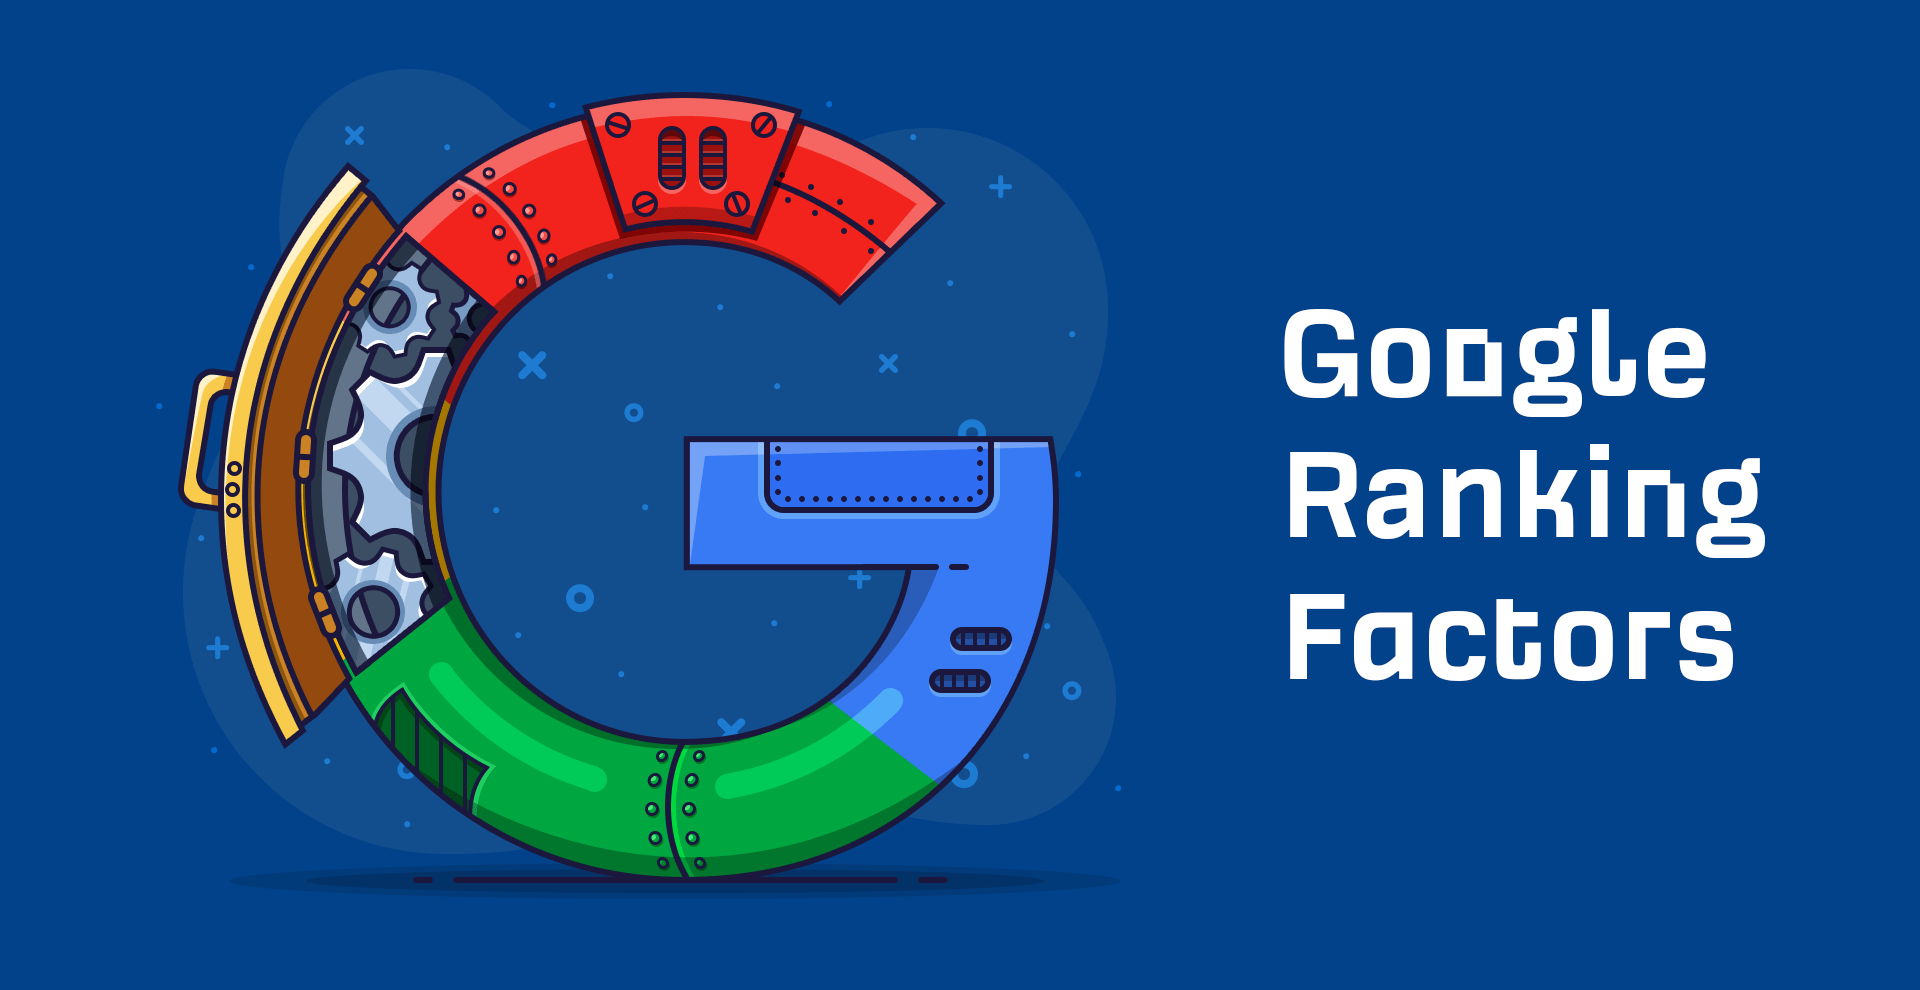 Google Ranking Factors 2020 – Important Search Engine Signals